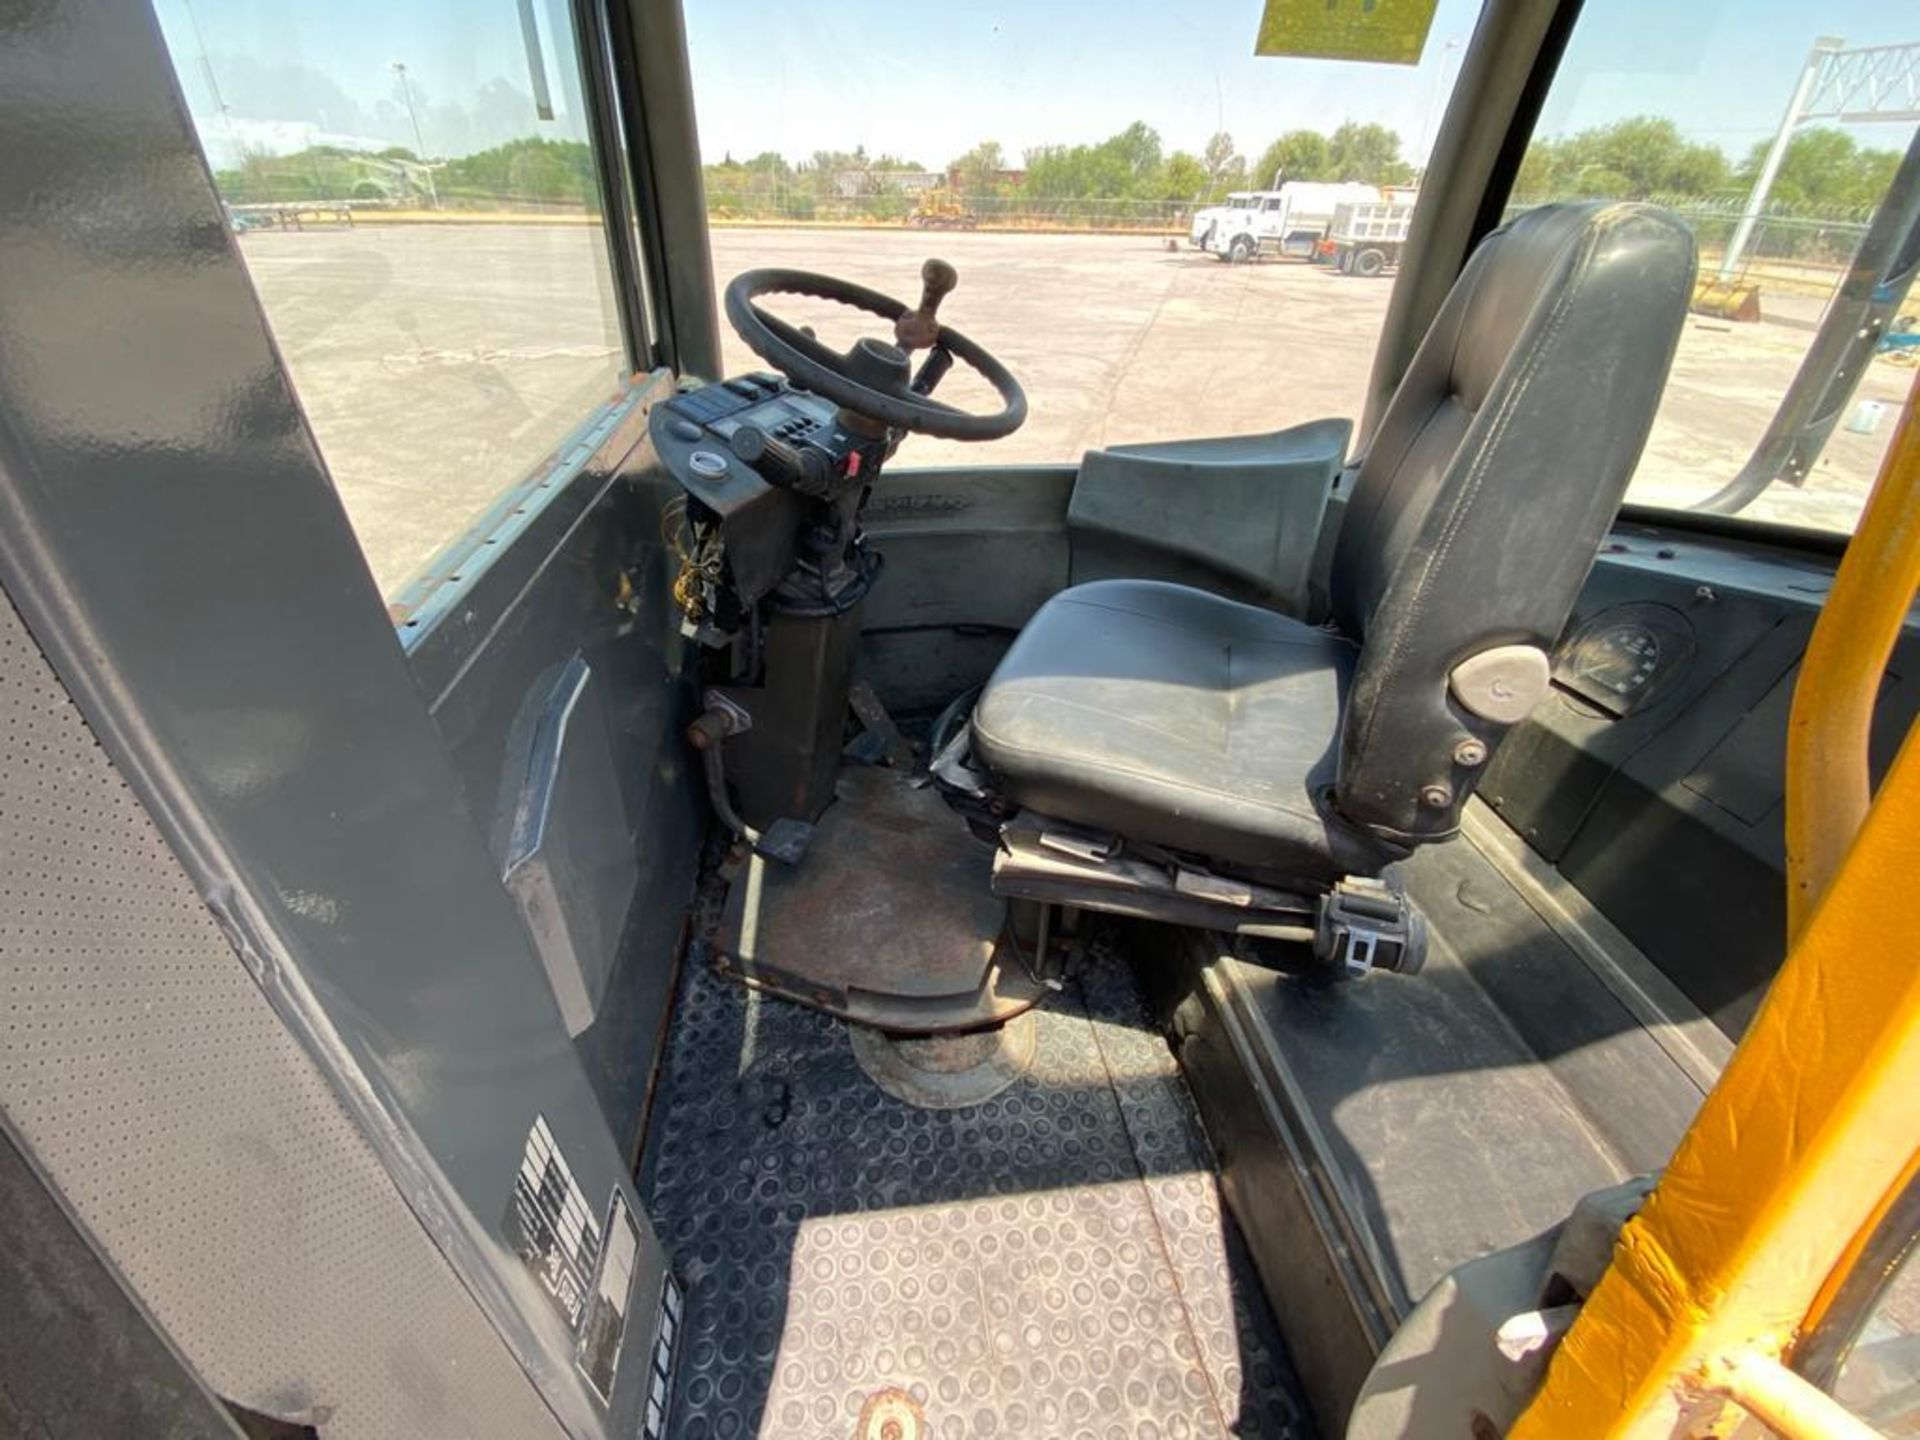 Terberg Capacity 2002 Terminal Tractor, automatic transmission, with Volvo motor - Image 20 of 57